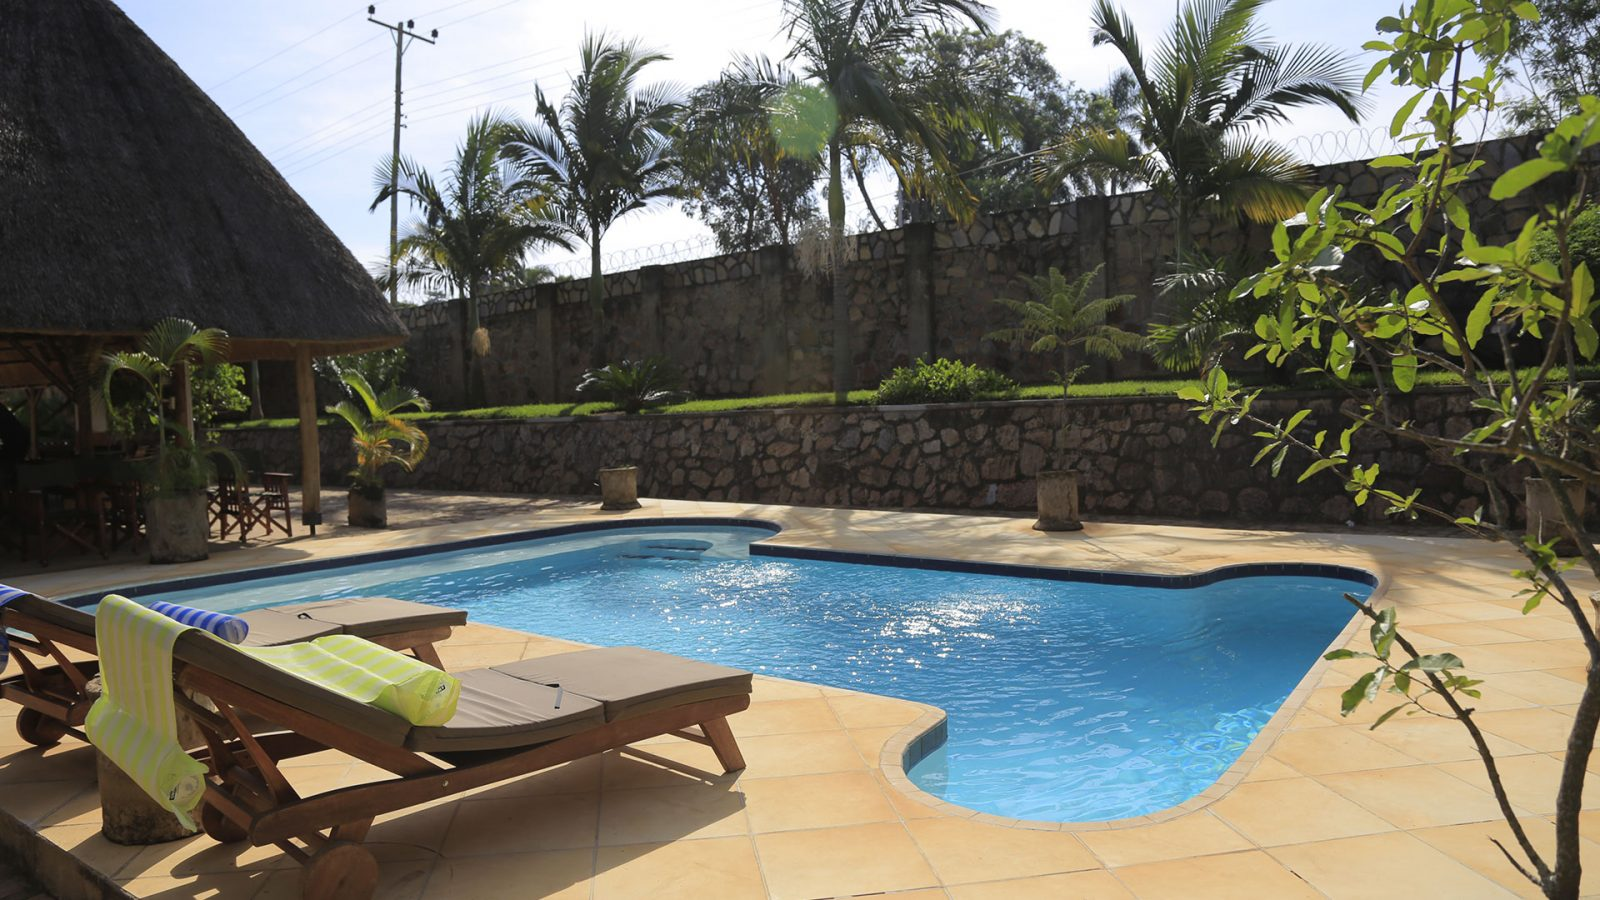 Entebbe hotel Swimming Pool